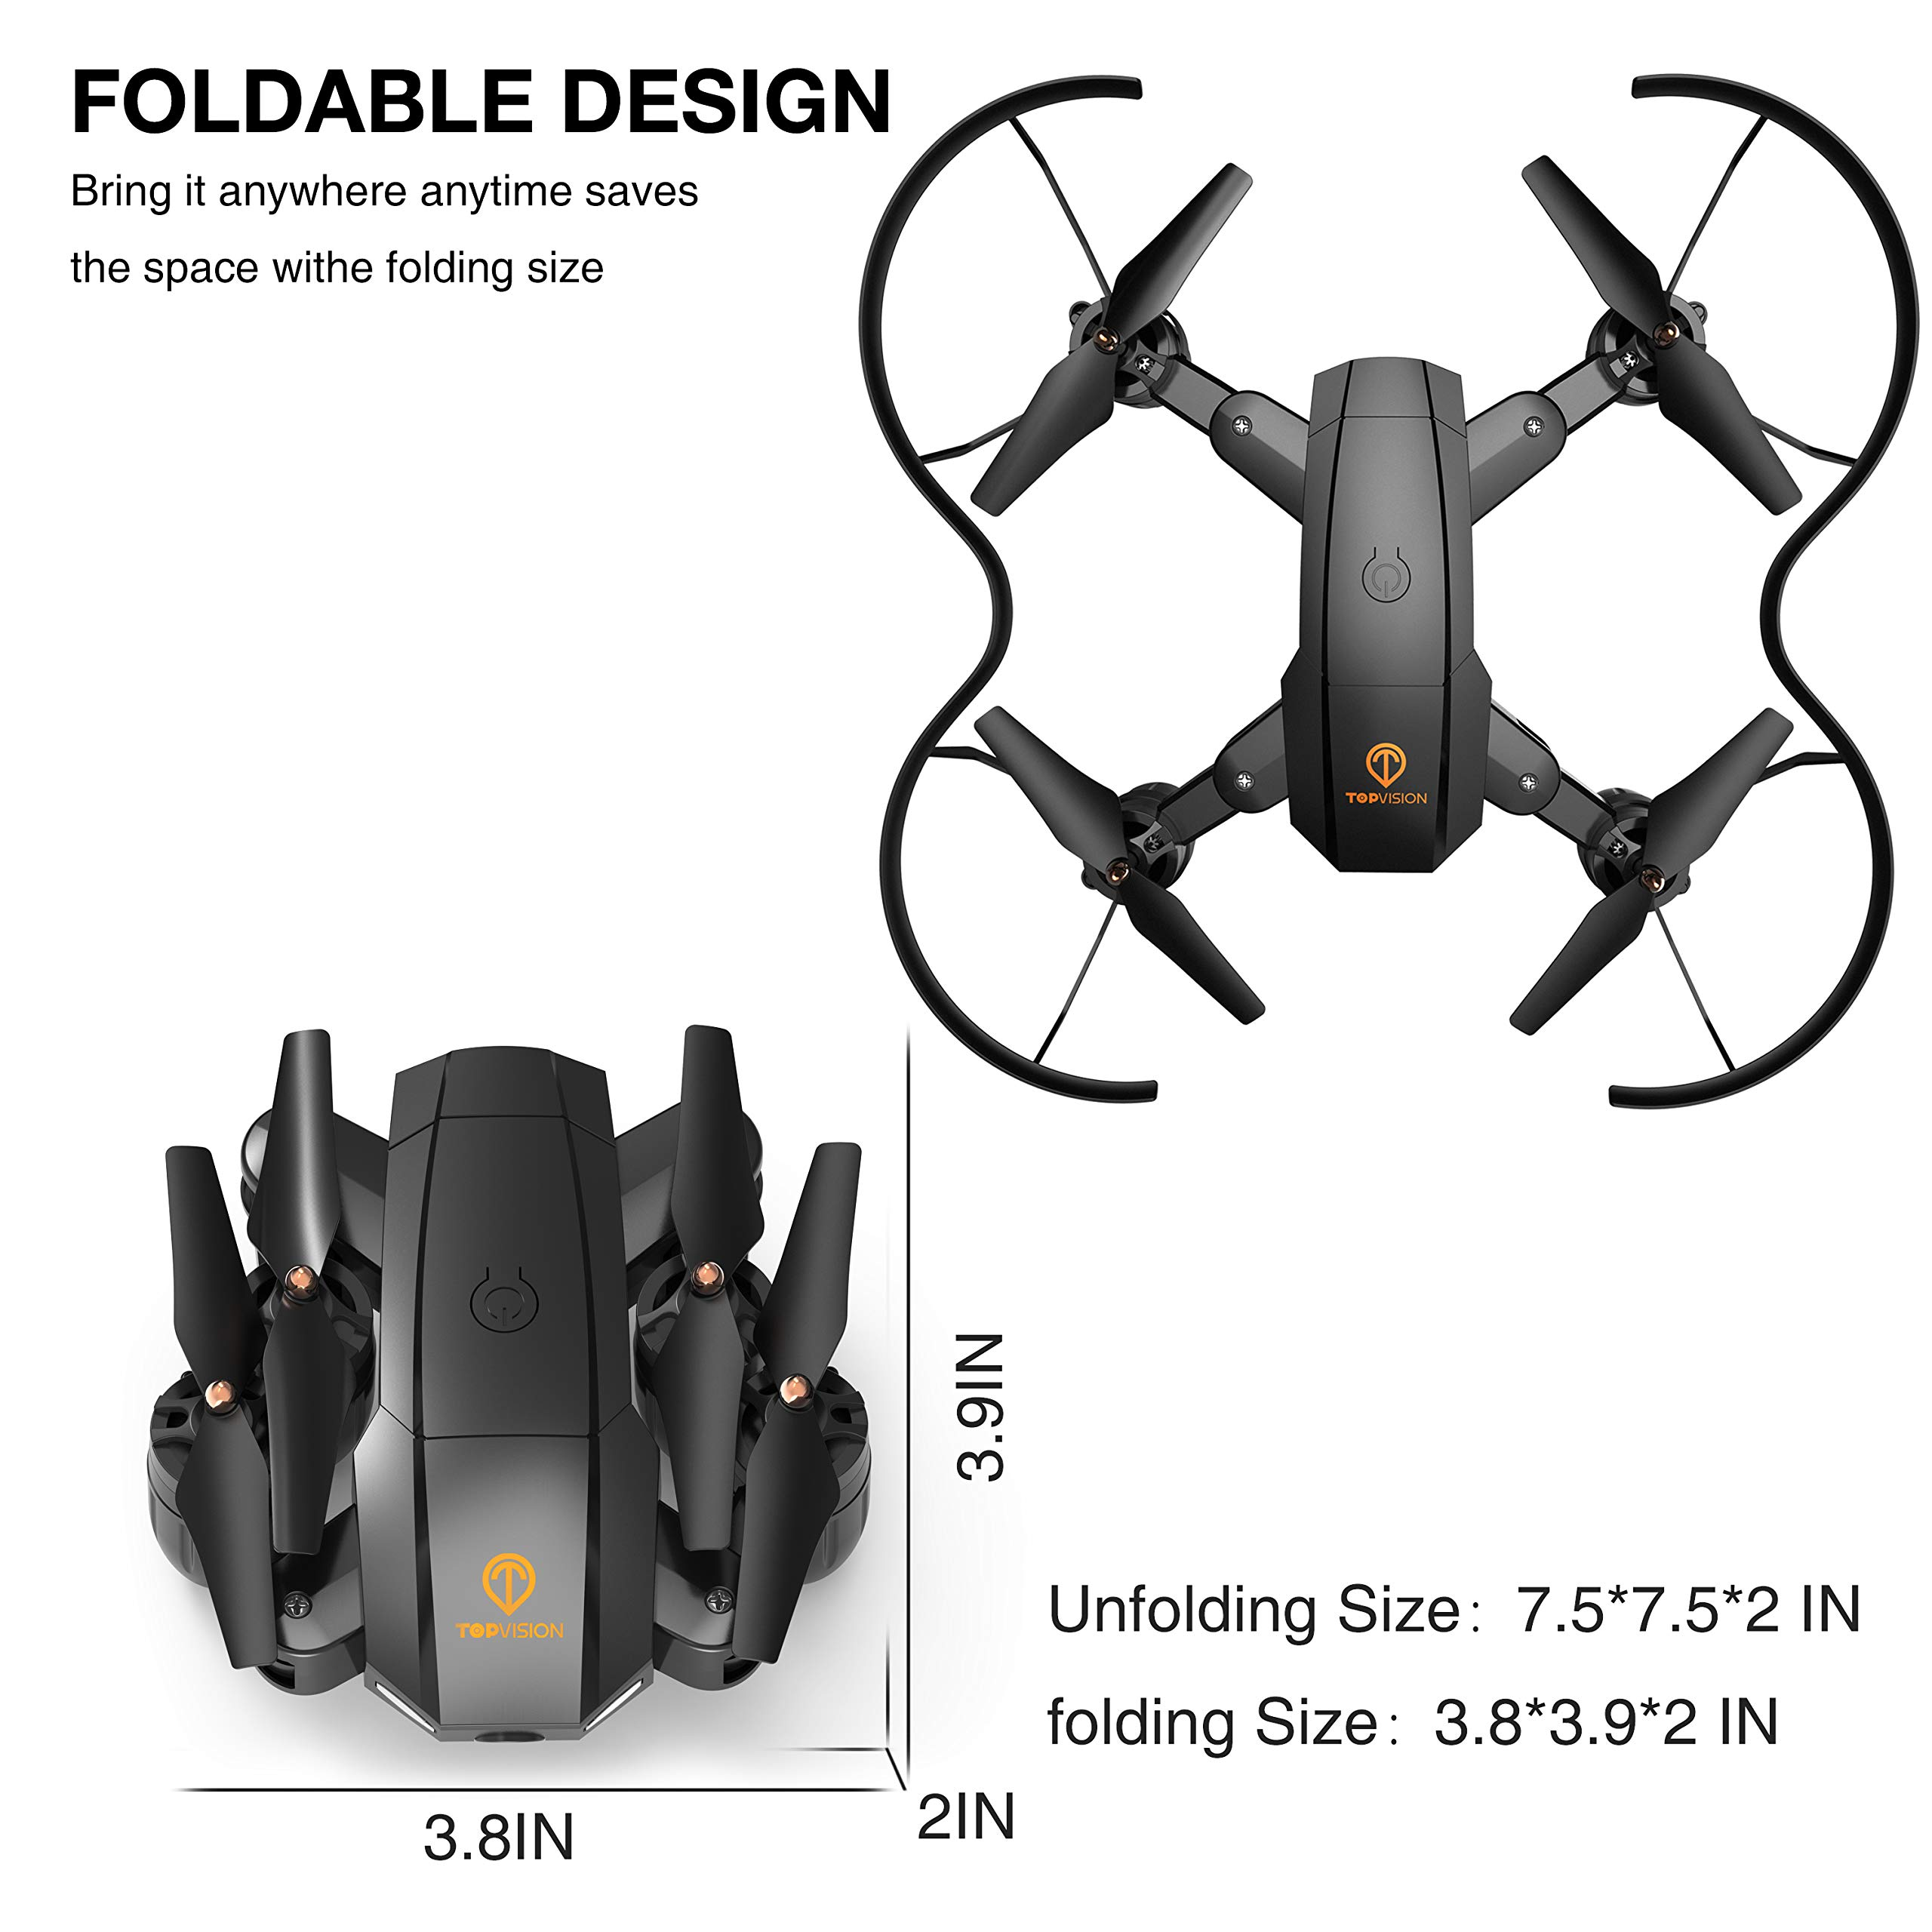 Drone with Camera, TOPVISION Foldable Quadcopter RC Drone with WiFi FPV HD Camera Live Video, Altitude Hold, One Key Start, APP Control, Black by T TOPVISION (Image #8)